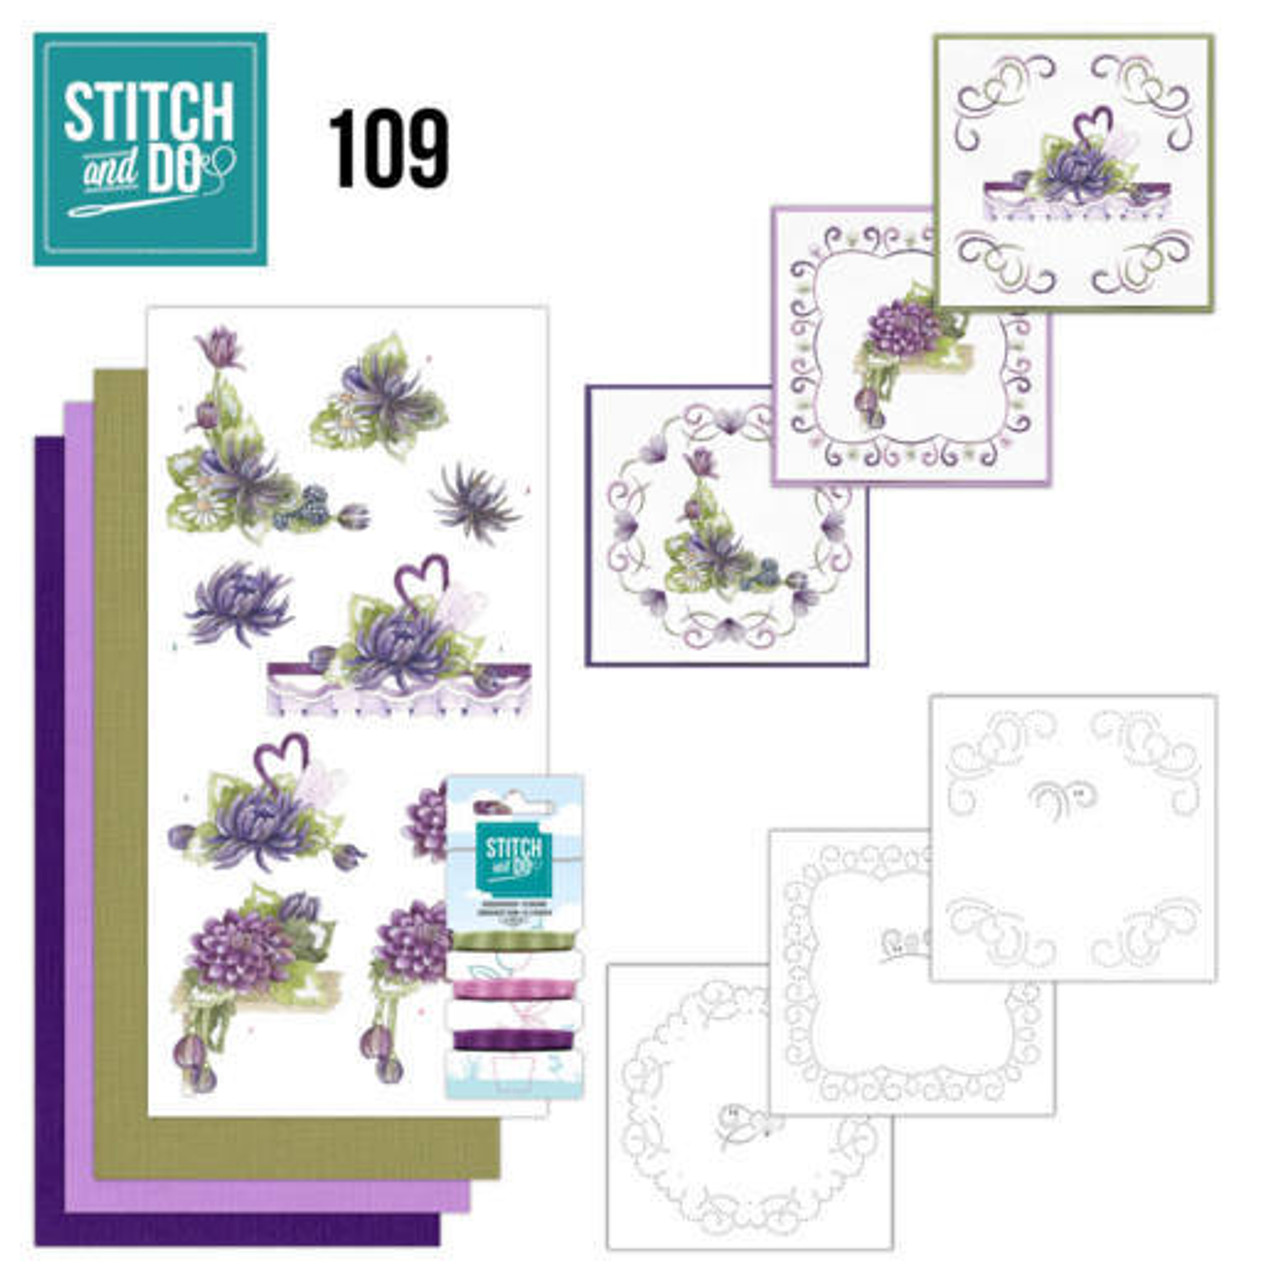 Stitch and Do 109 - Card Embroidery Kit - Summer Dahlia's